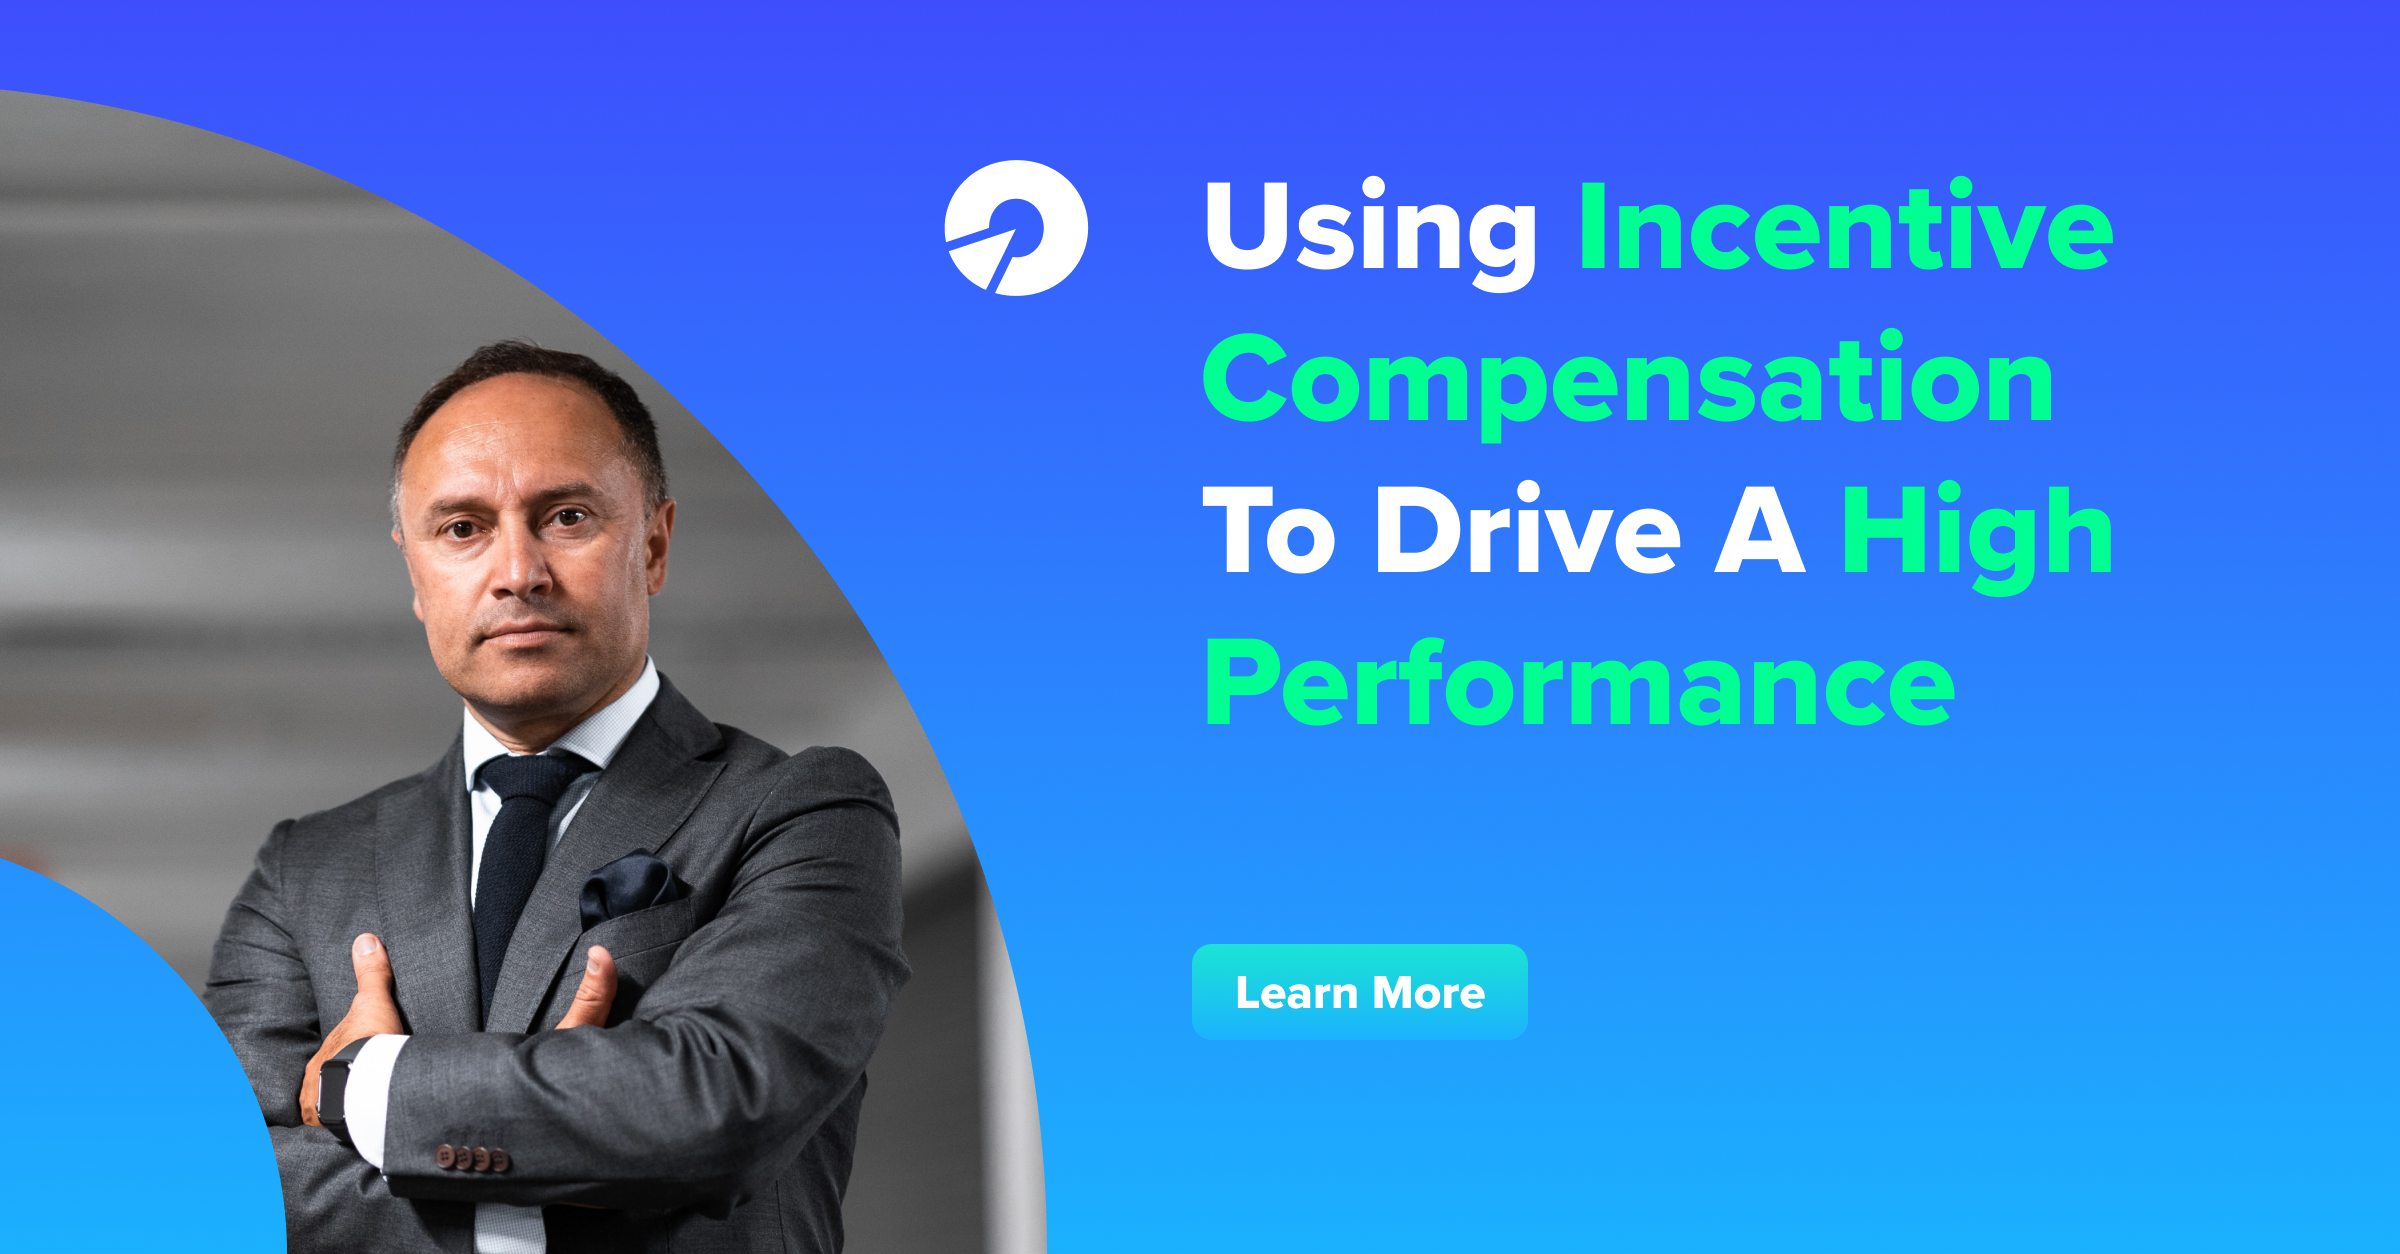 Using Incentive Compensation To Drive A High Performance